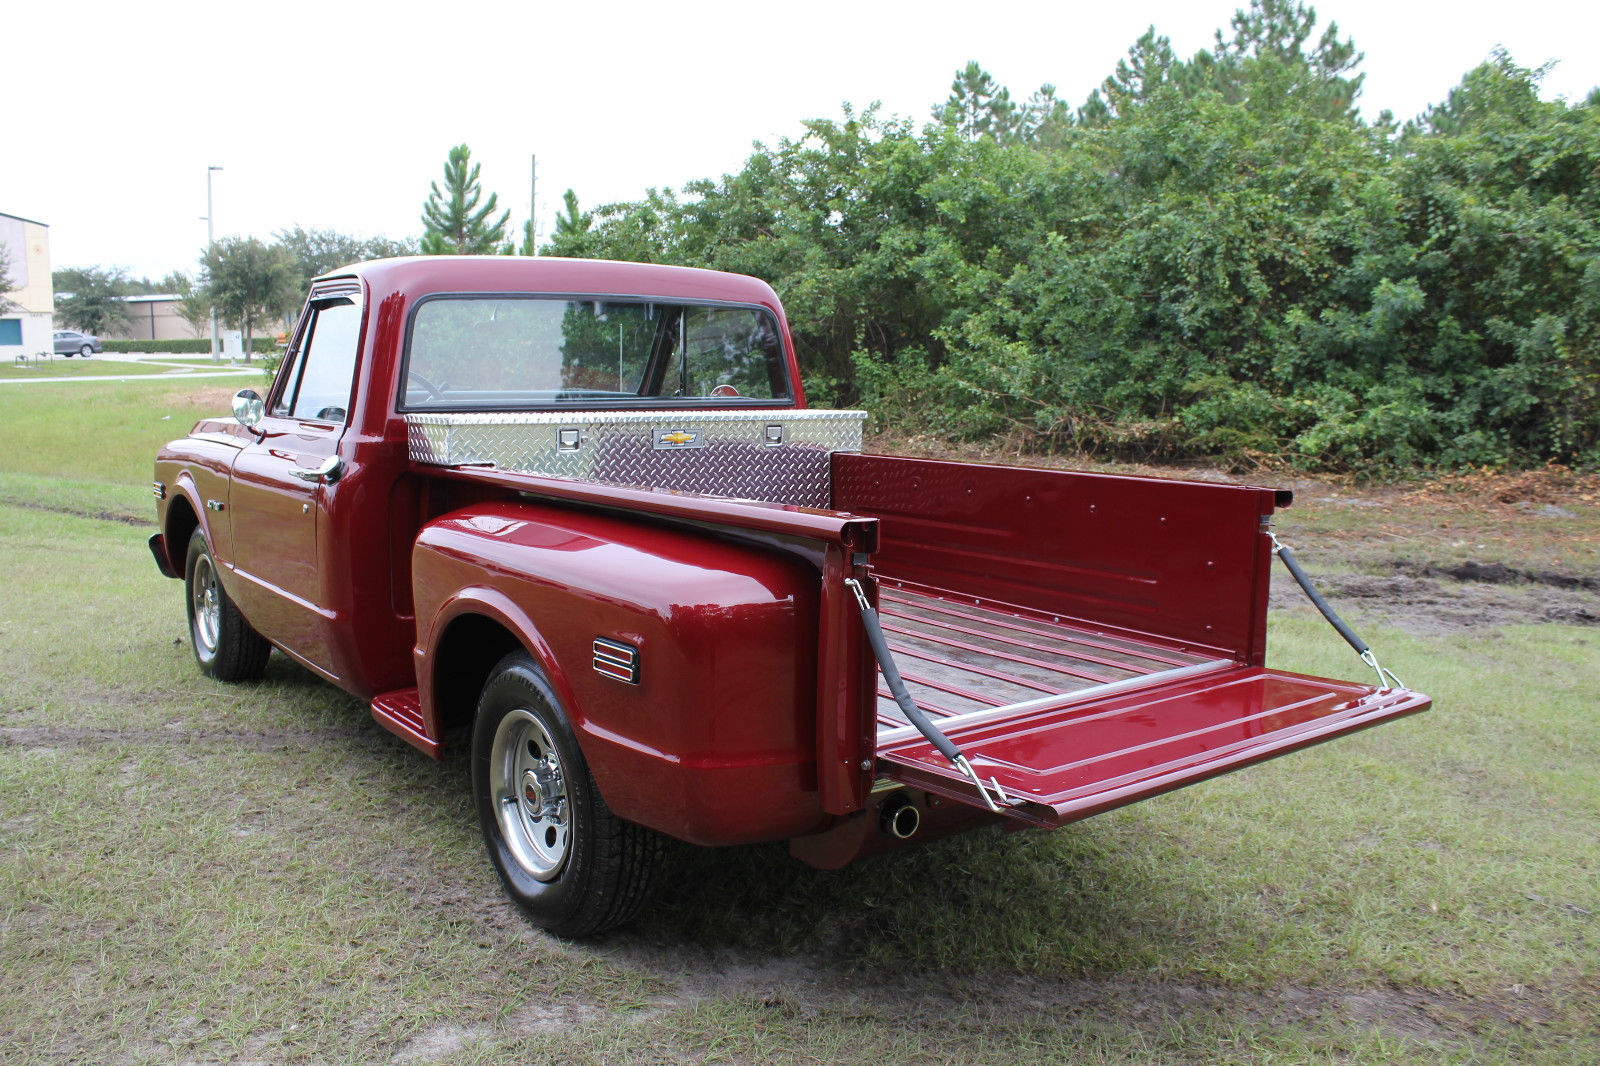 1969 chevrolet c10 stepside shortbed c 10 chevy pickup truck call now. Black Bedroom Furniture Sets. Home Design Ideas